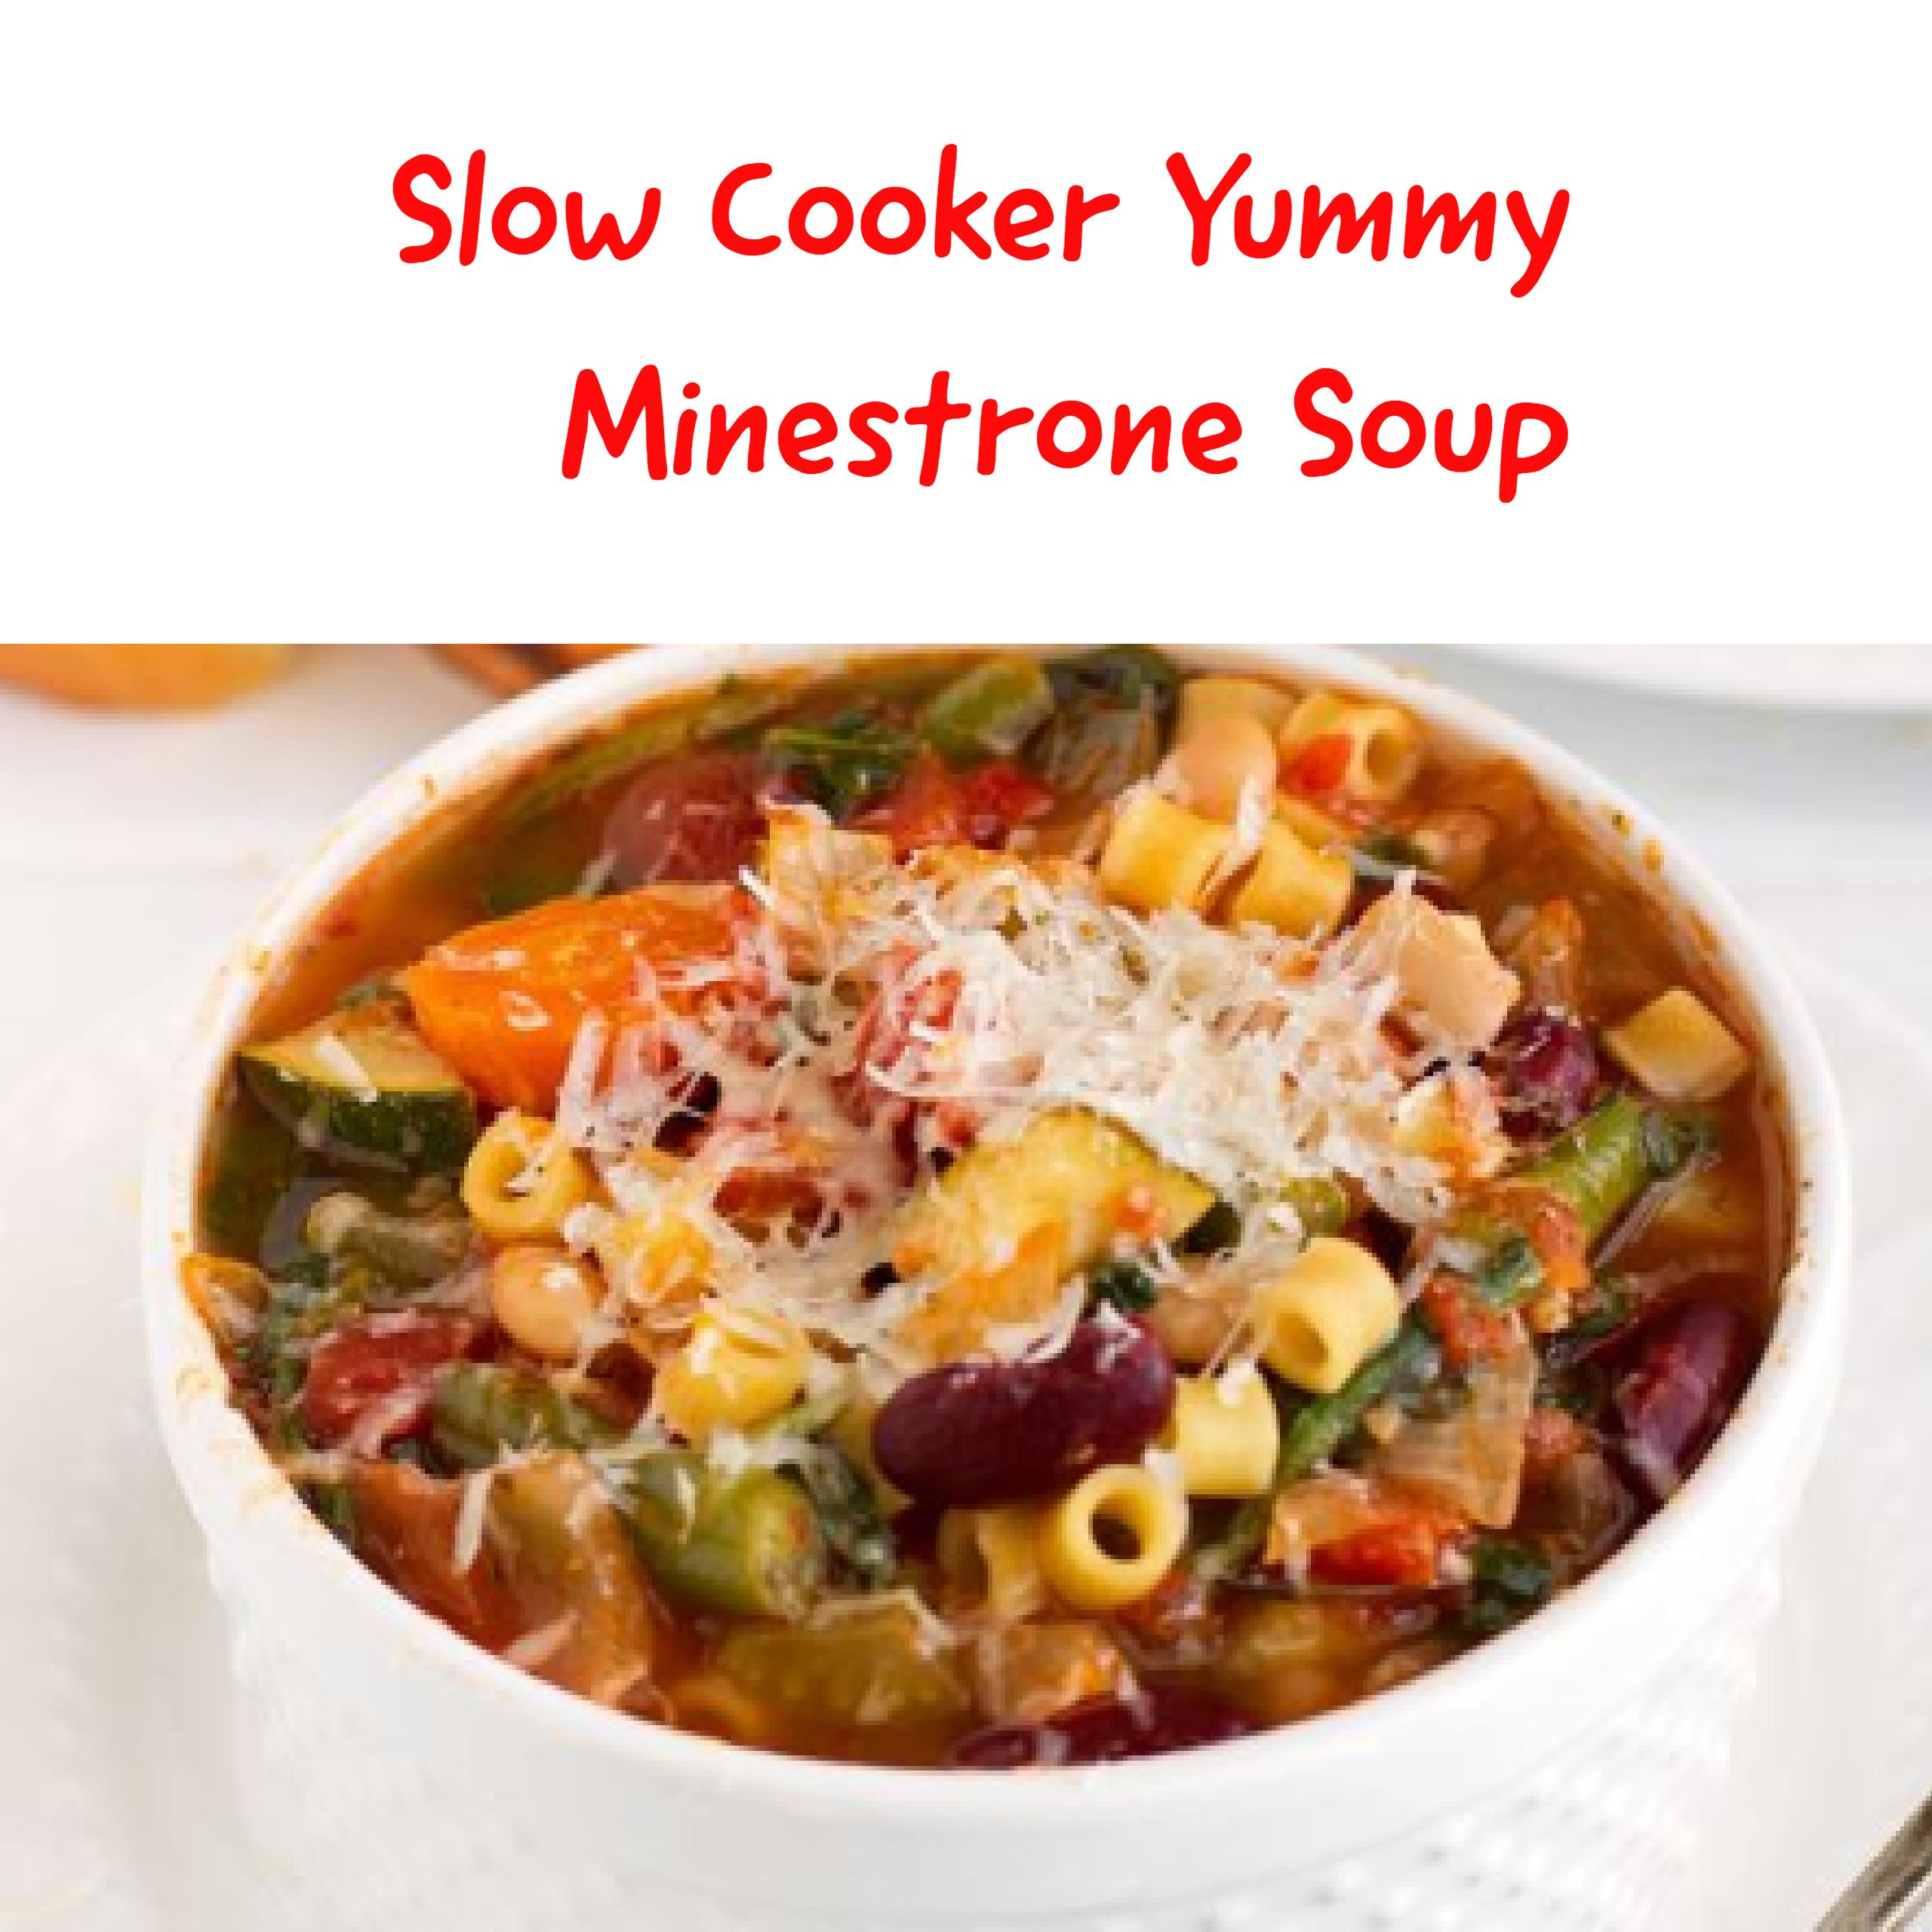 Slow Cooker Minestrone Yummy